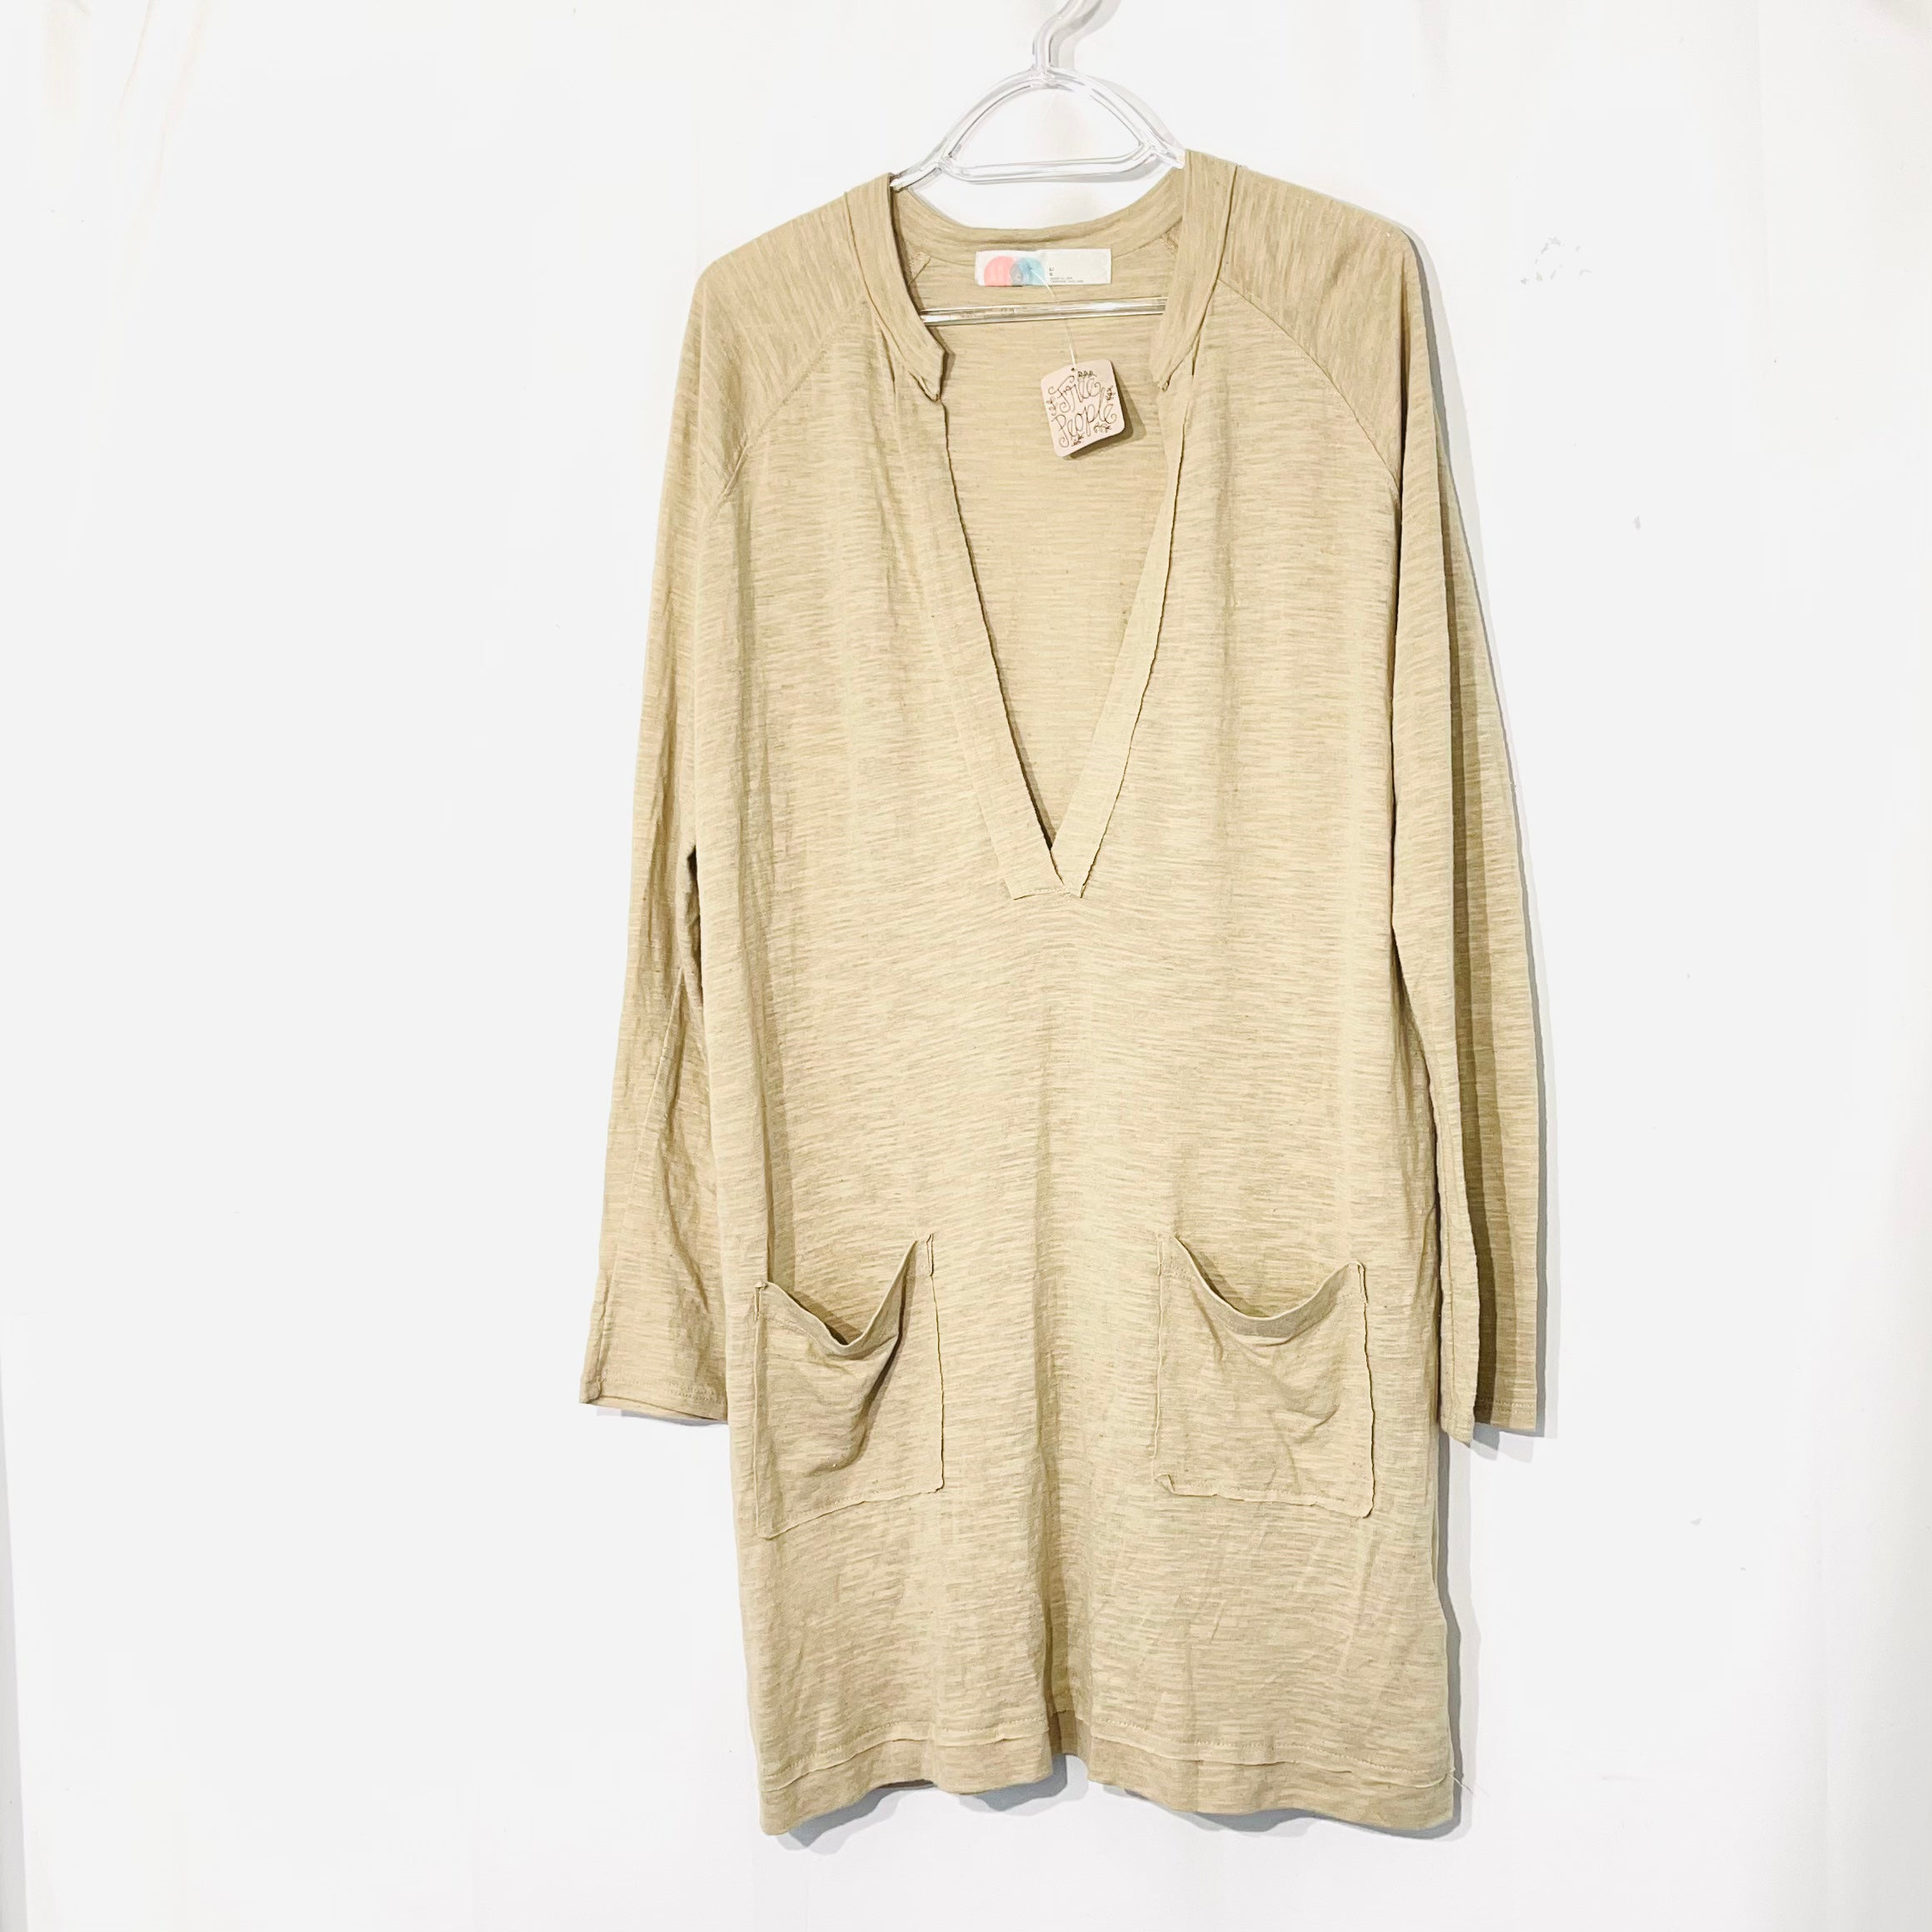 Primary Photo - BRAND: FREE PEOPLE <BR>STYLE: DRESS TUNIC COVER<BR>COLOR: BEIGE <BR>SIZE: L <BR>SKU: 262-26275-73810